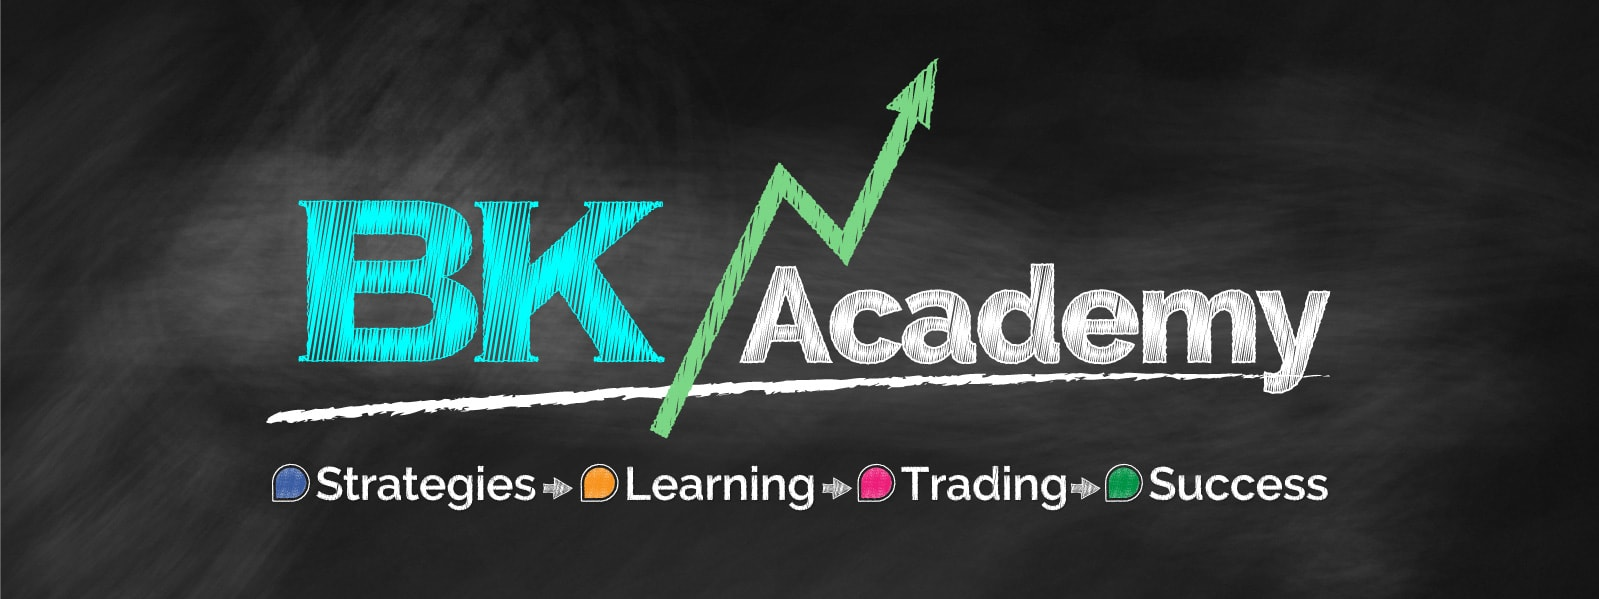 BK Academy: Strategies > Learning > Trading > Success